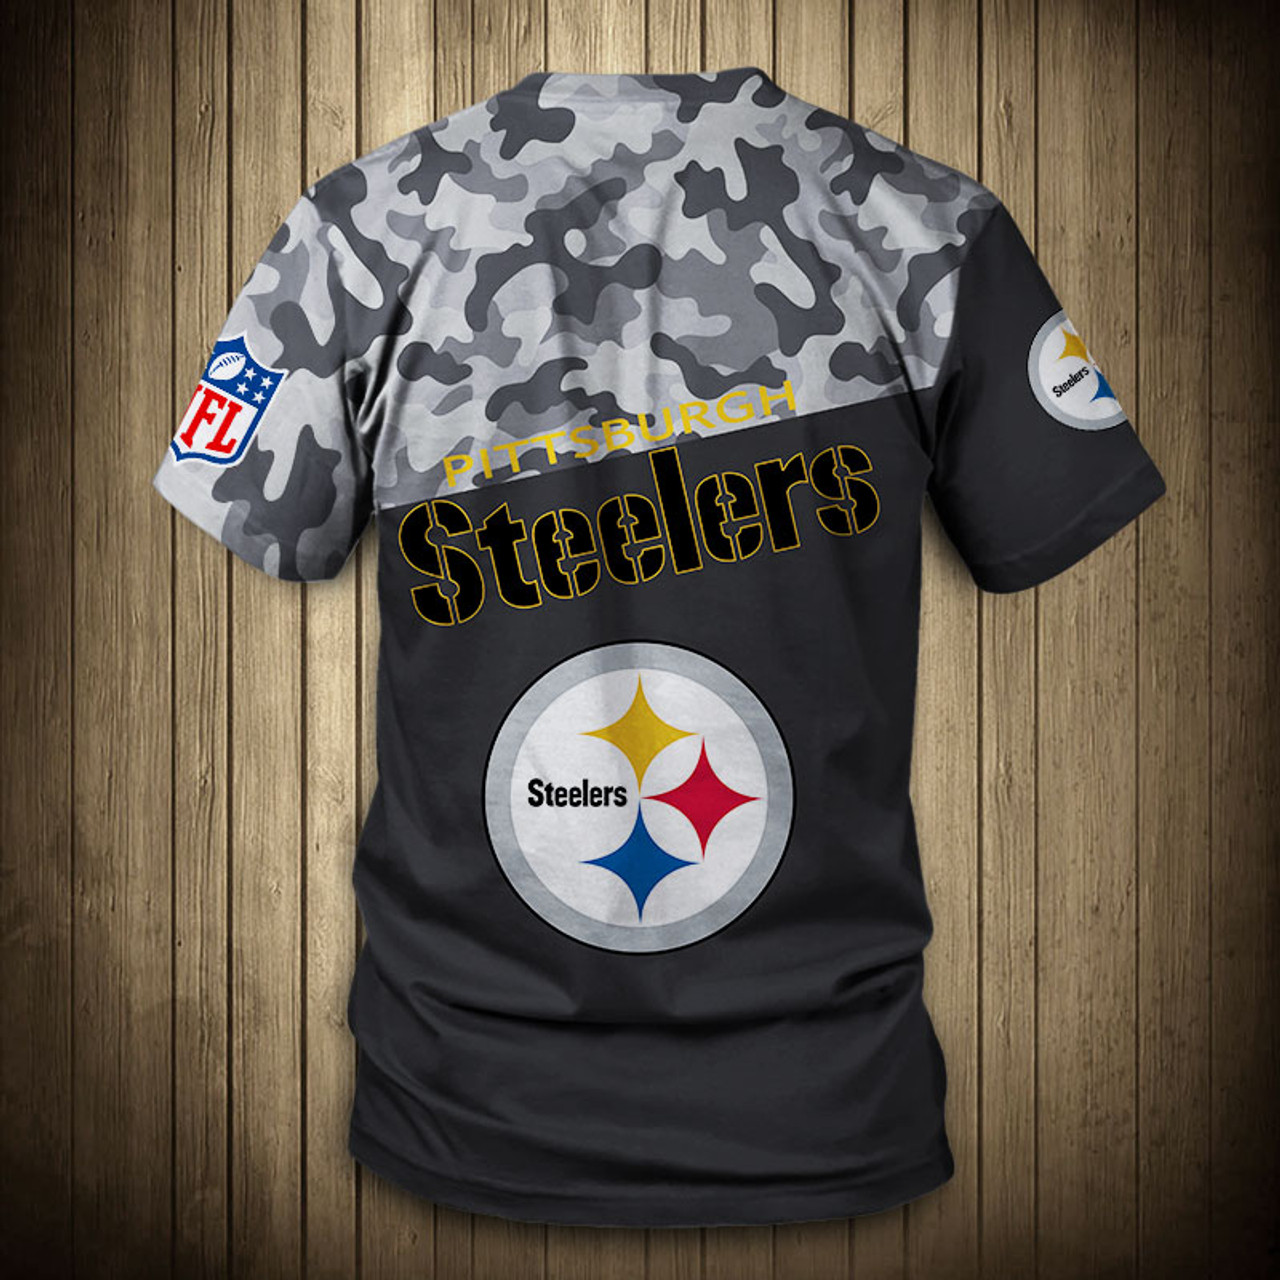 online store 9abd4 03893 **(OFFICIAL-N.F.L.PITTSBURGH-STEELERS-CAMO.DESIGN-TEAM-TEES/CUSTOM-3D-STEELERS-OFFICIAL-LOGOS  & OFFICIAL-STEELERS-TEAM-COLORS/DETAILED-GRAPHIC-PRINTED...